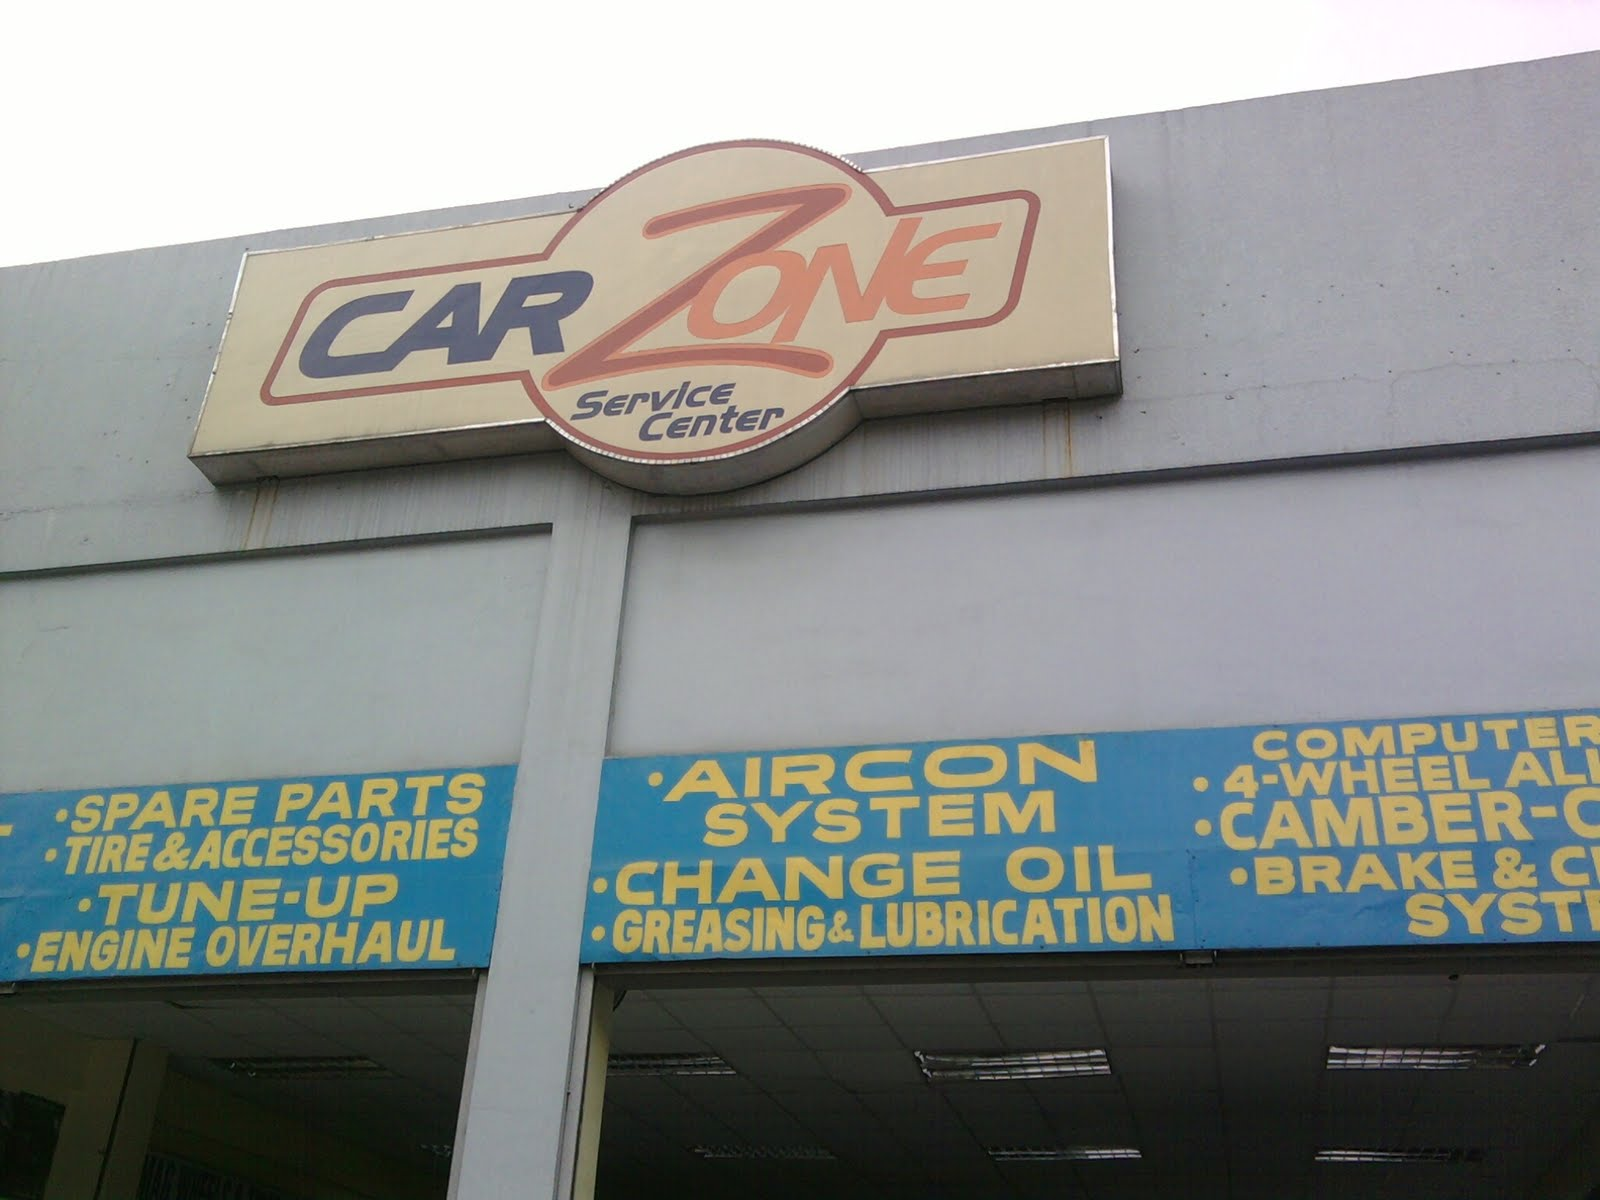 Car Zone Service Center